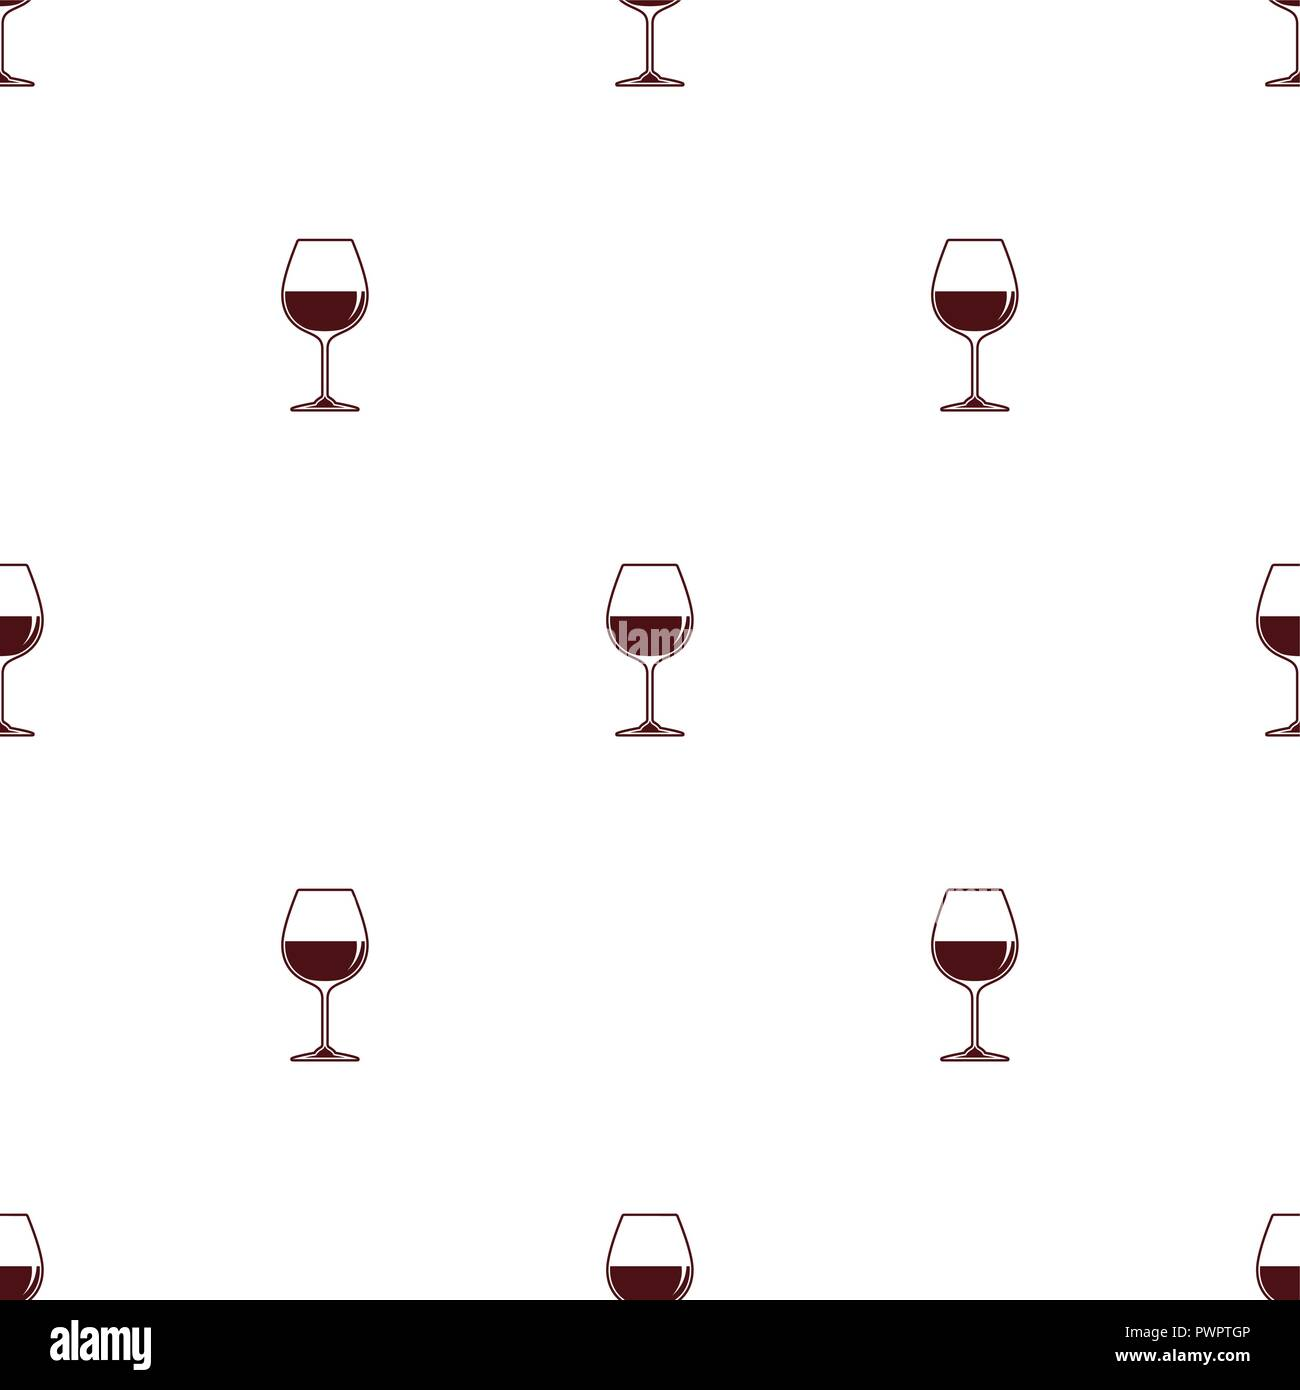 Seamless Pattern Vector Minimalist Background With Wineglass Red Wine Template For Your Design Stock Vector Image Art Alamy